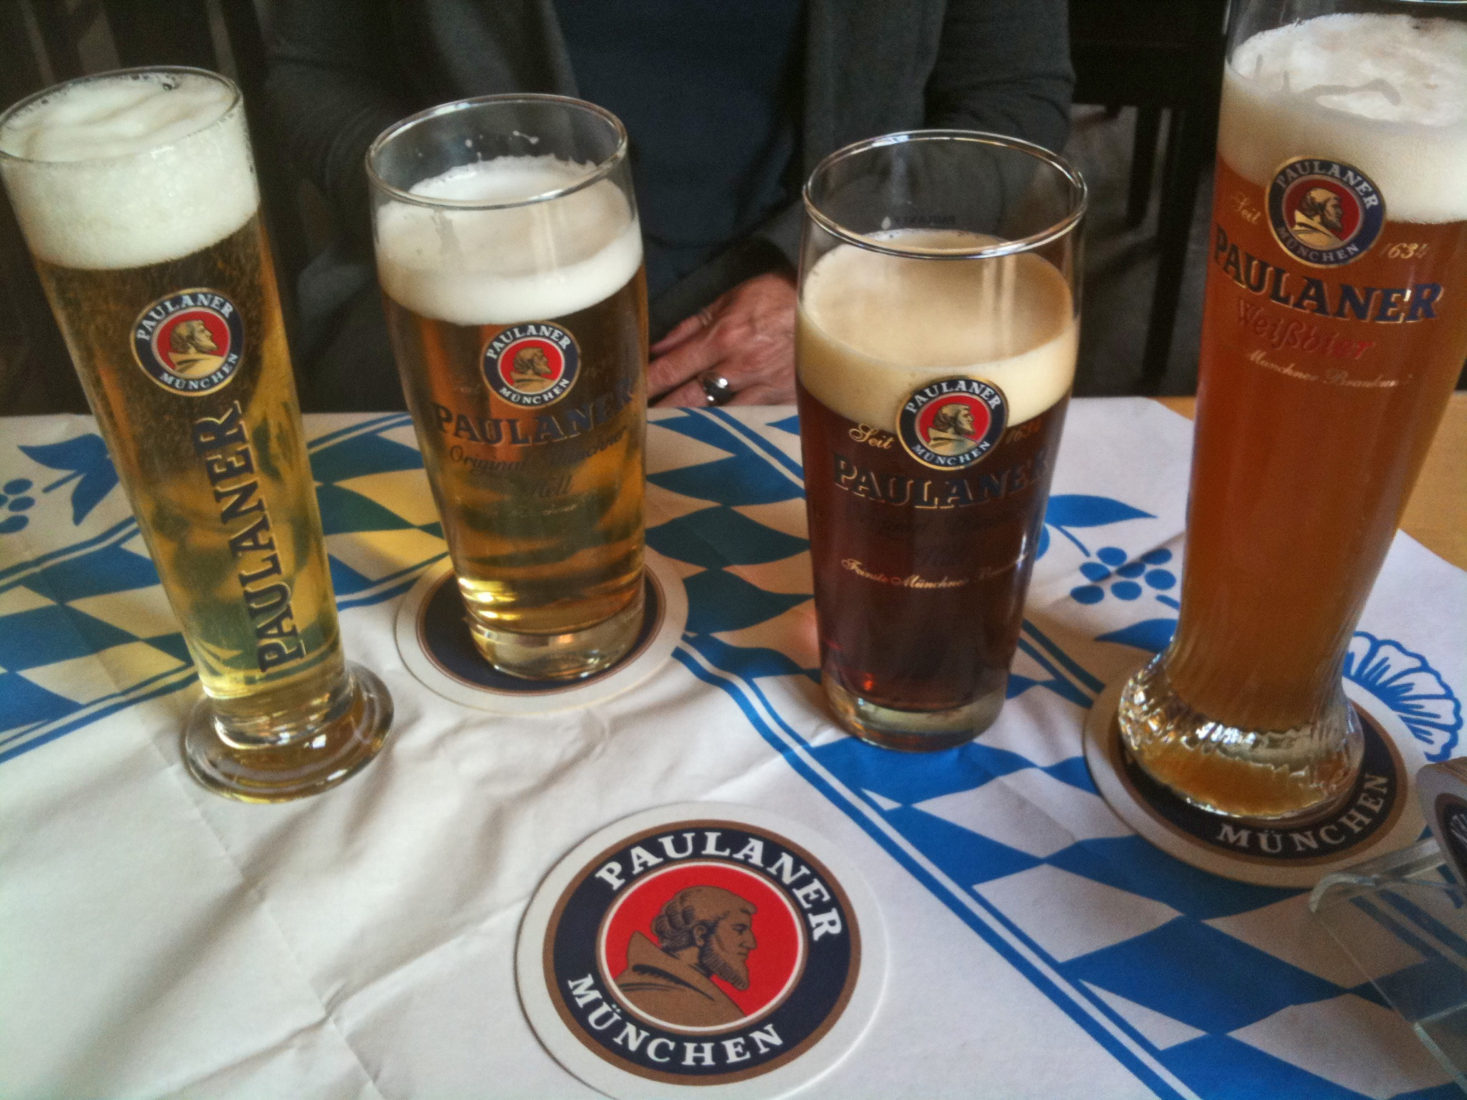 Paulaner Choices, Munich Germany